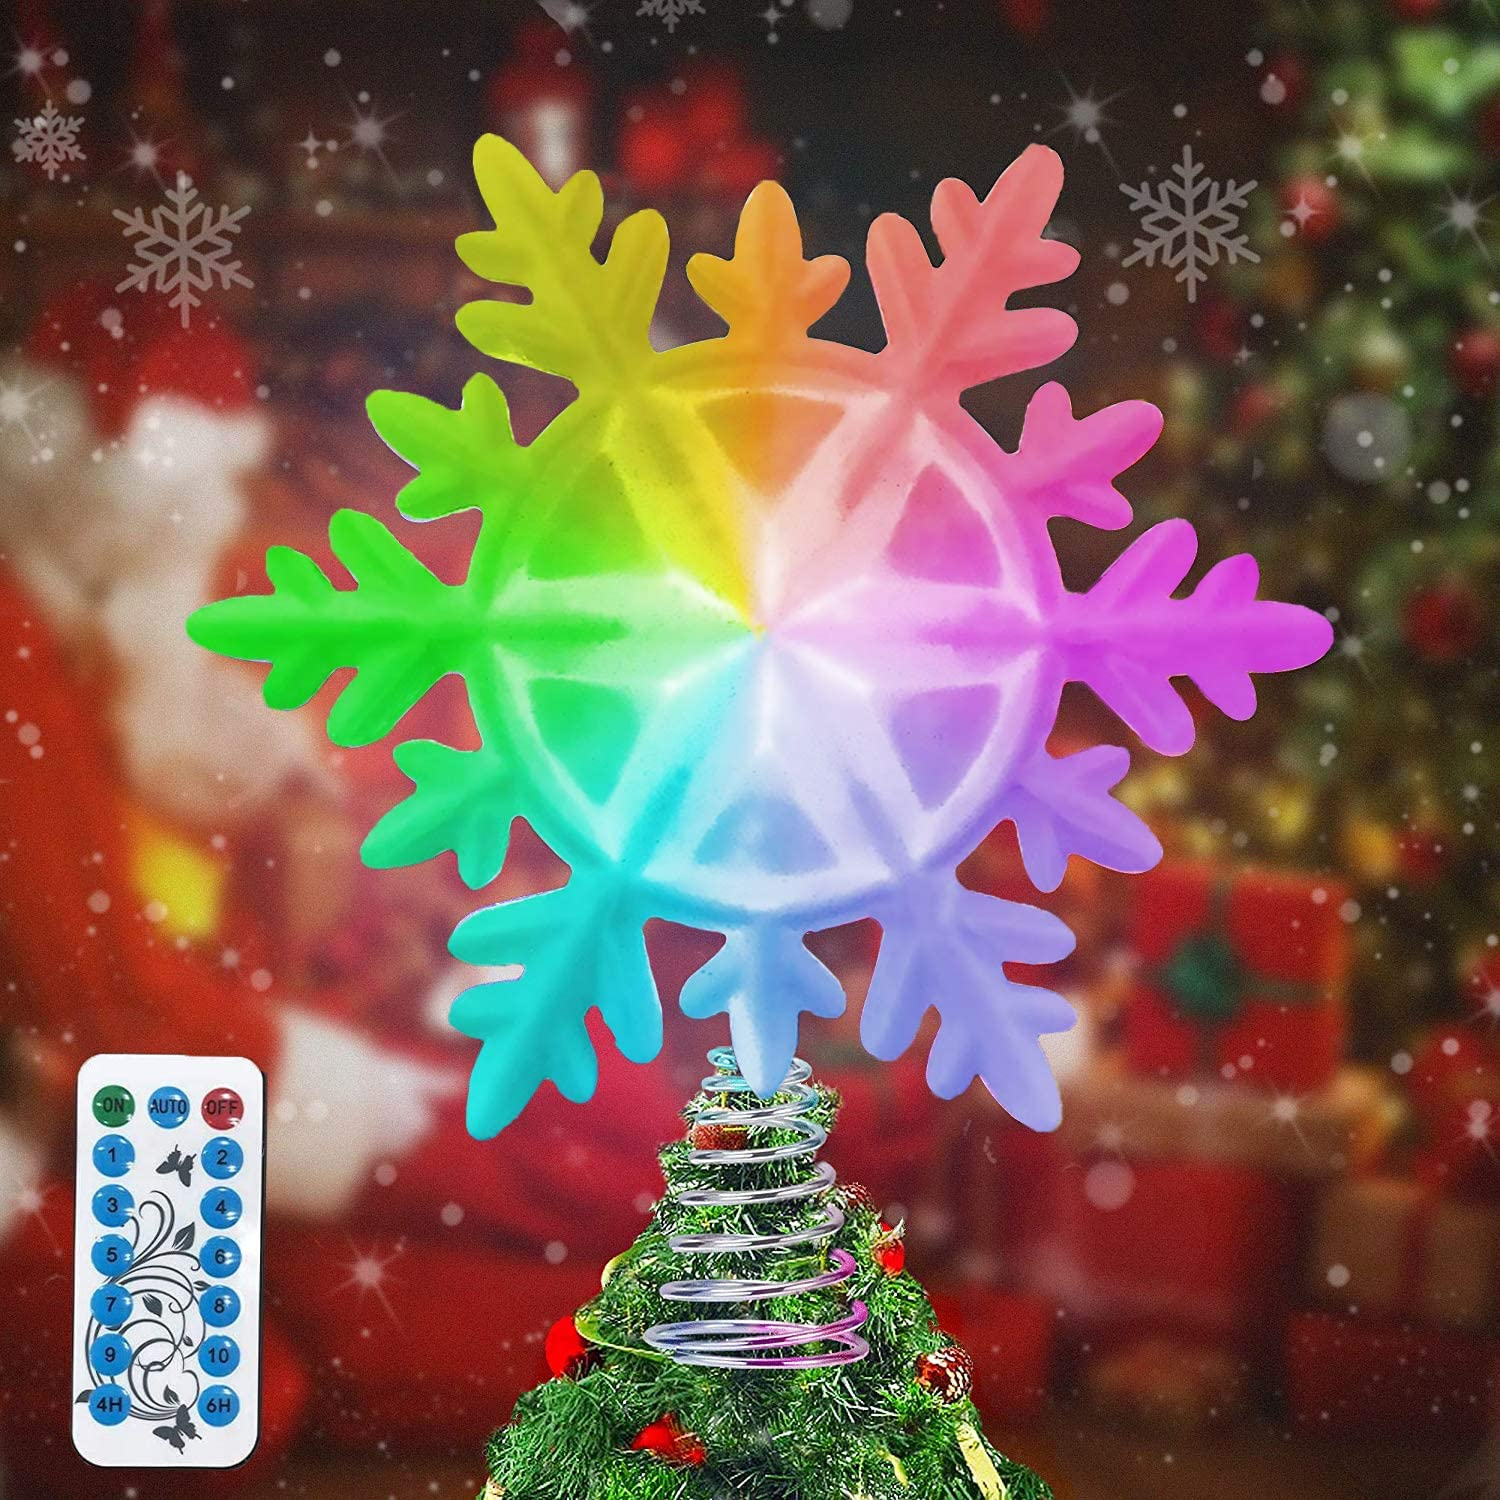 LSXD mart Snowflake Christmas Tree Topper with Very popular! Lights LED Multicolor